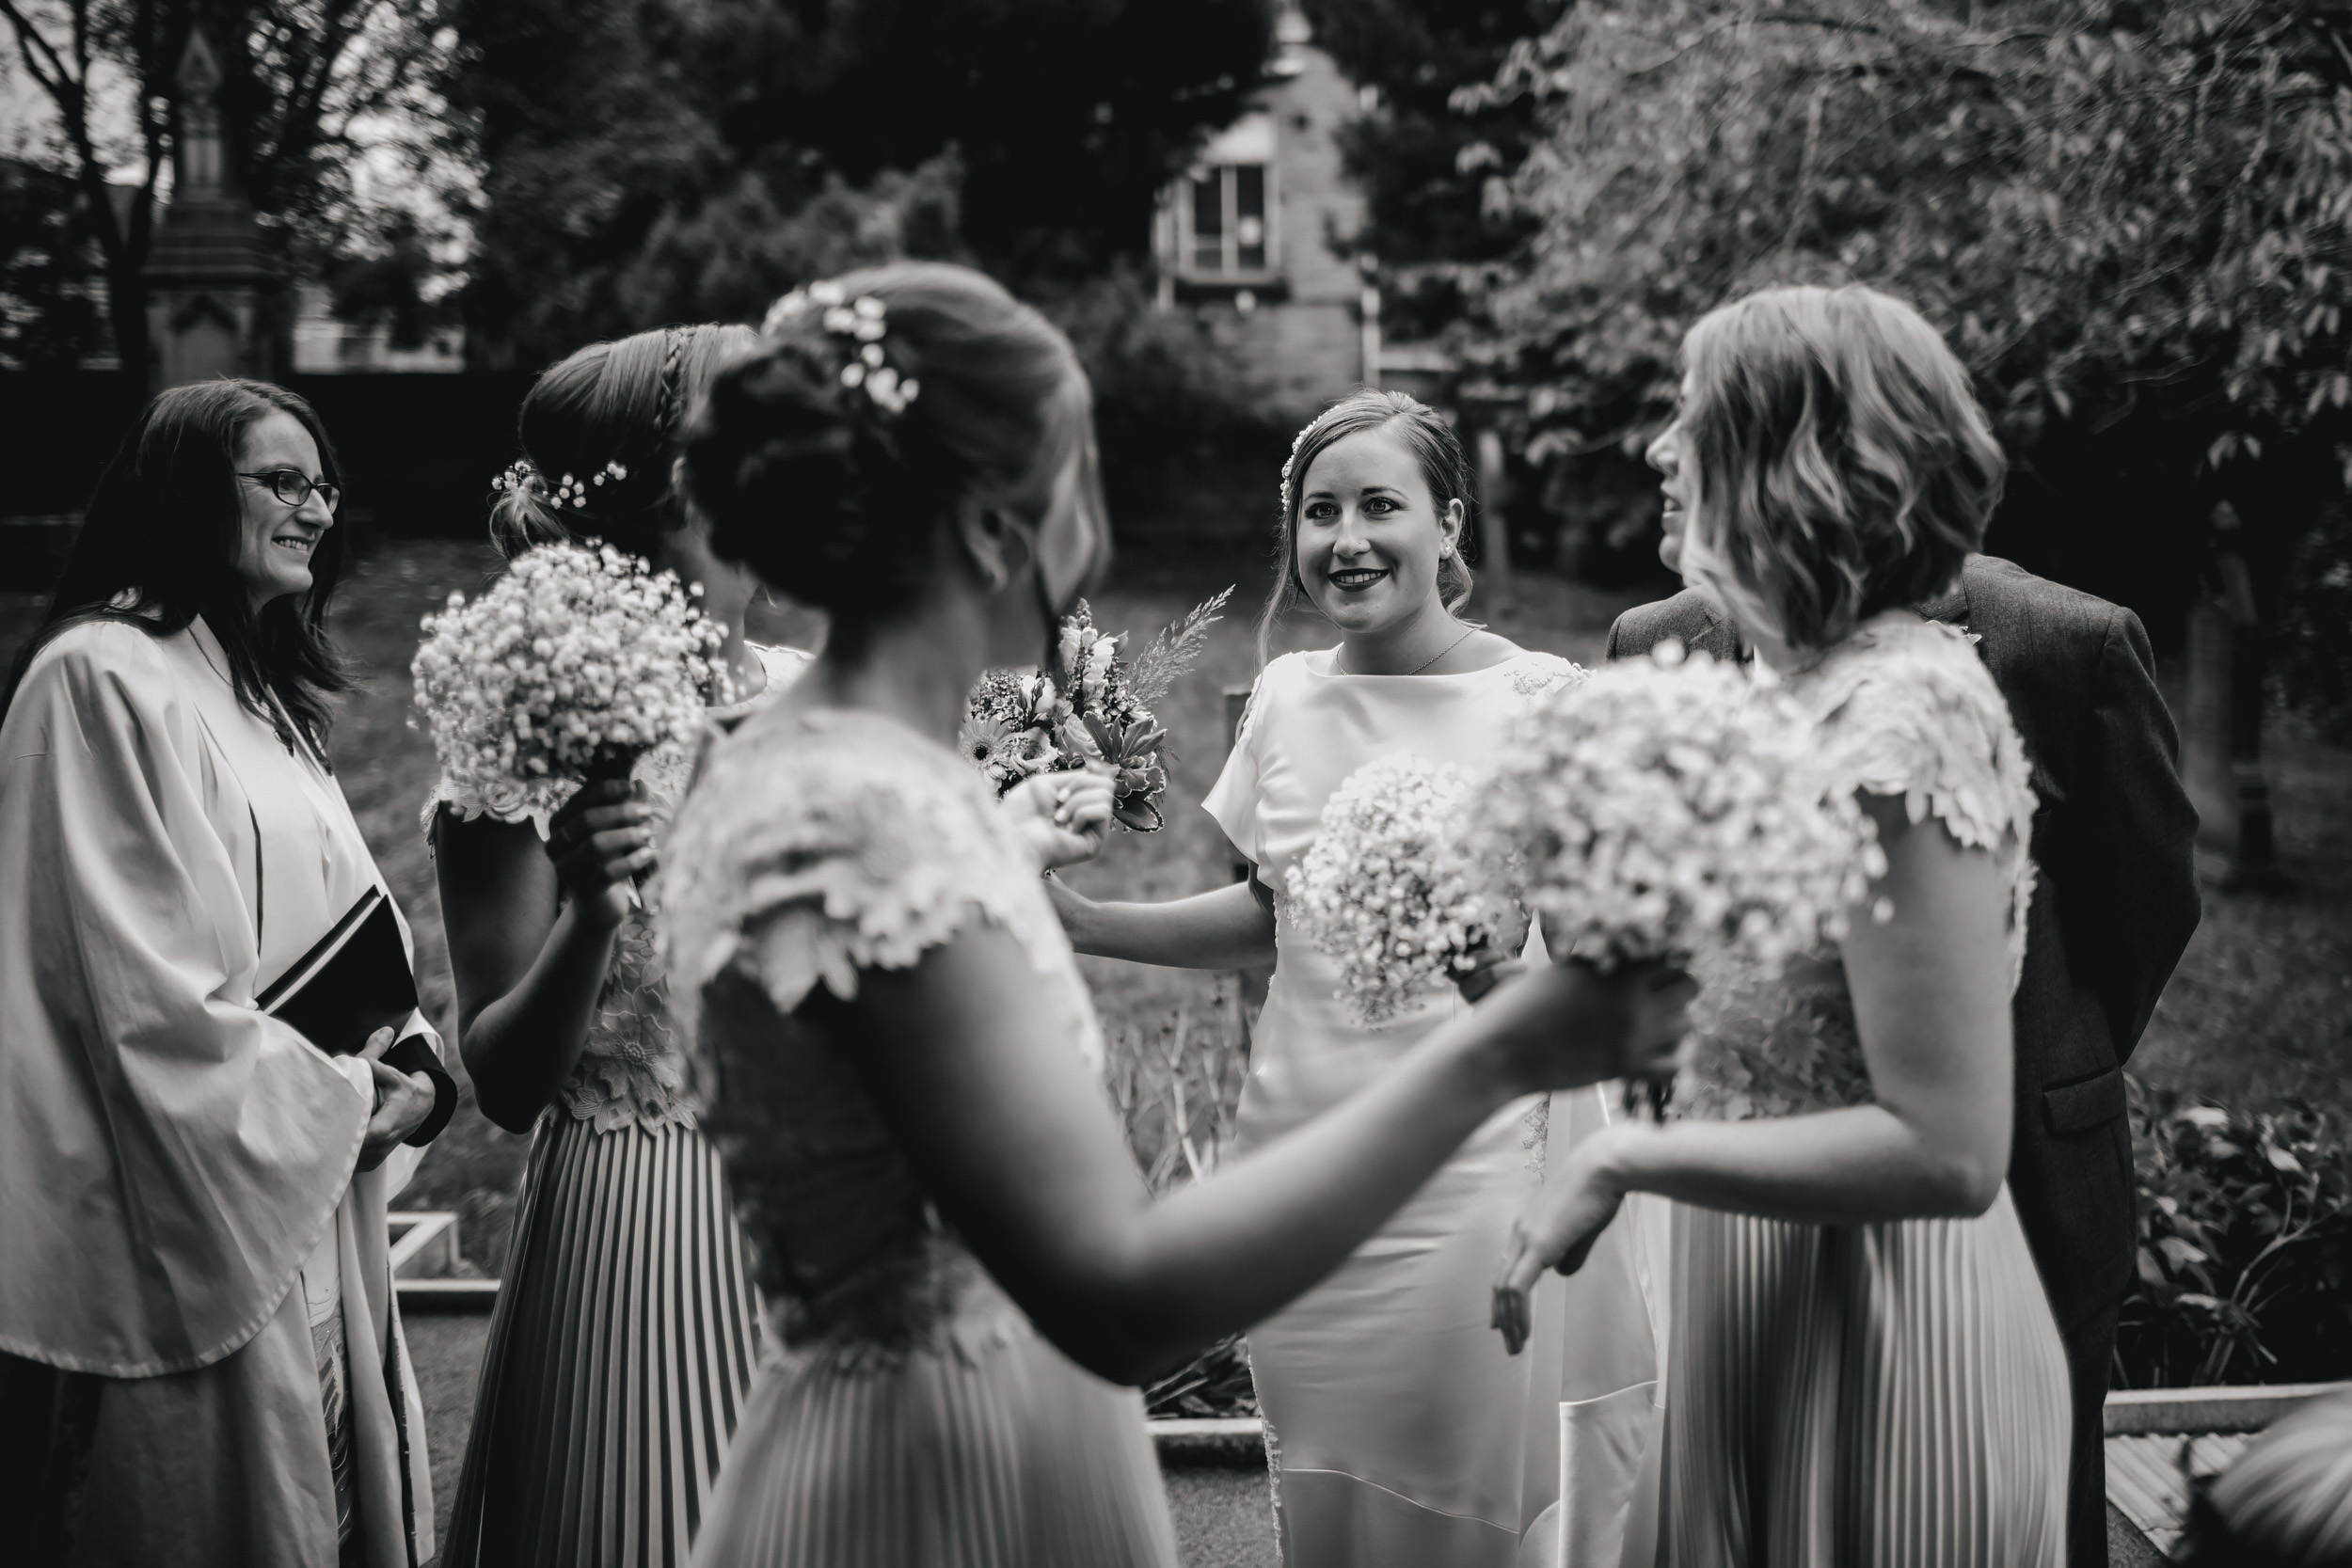 Bride and bridesmaids waiting in the church gardens